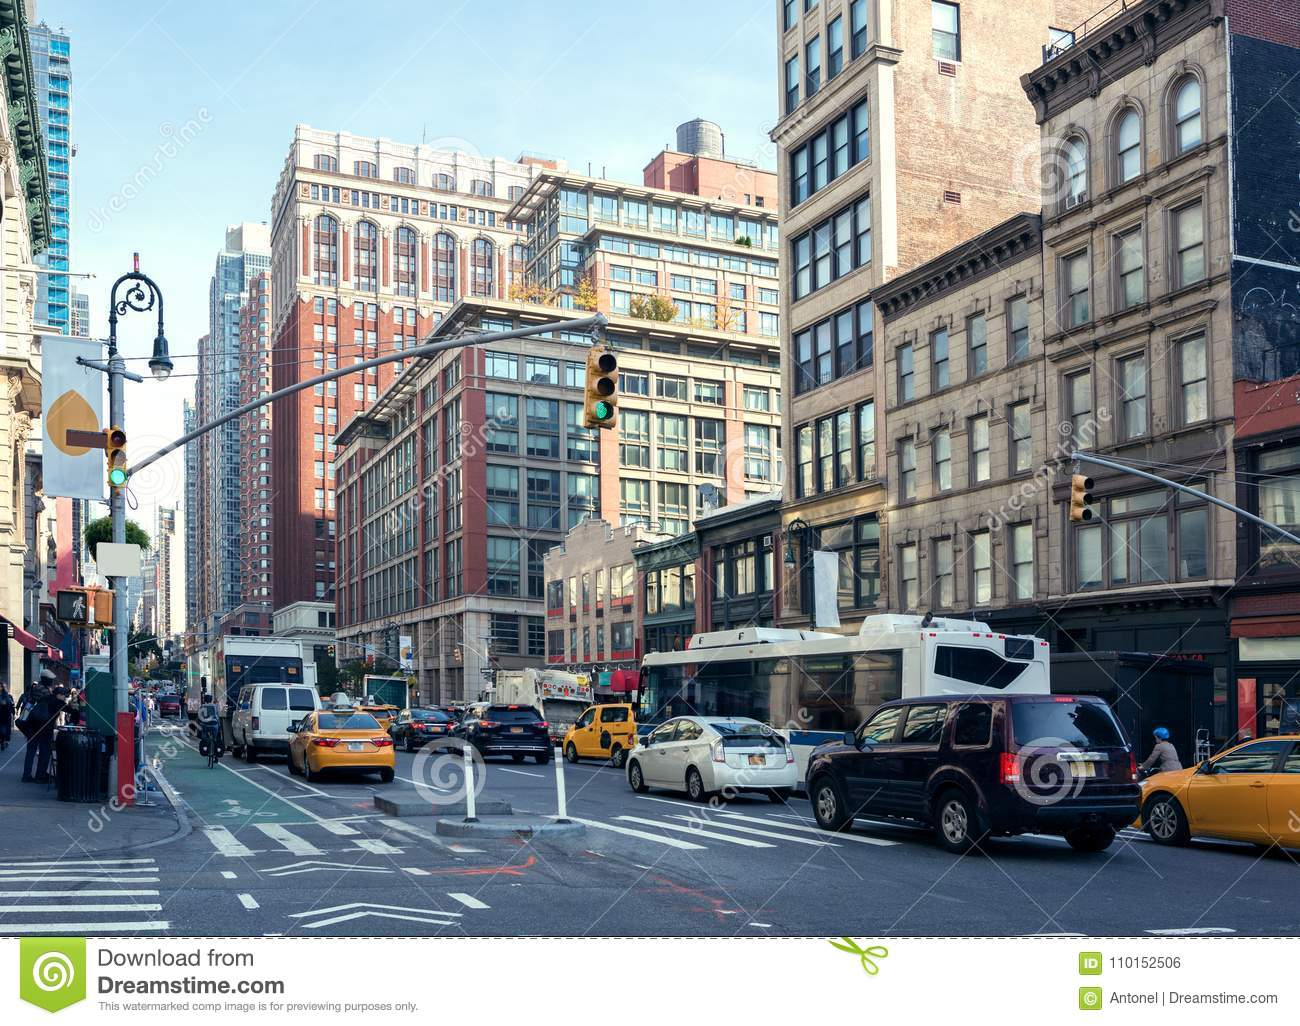 City Life and traffic on Manhattan avenue Ladies` Mile Historic District at daylight , New York City, United States.